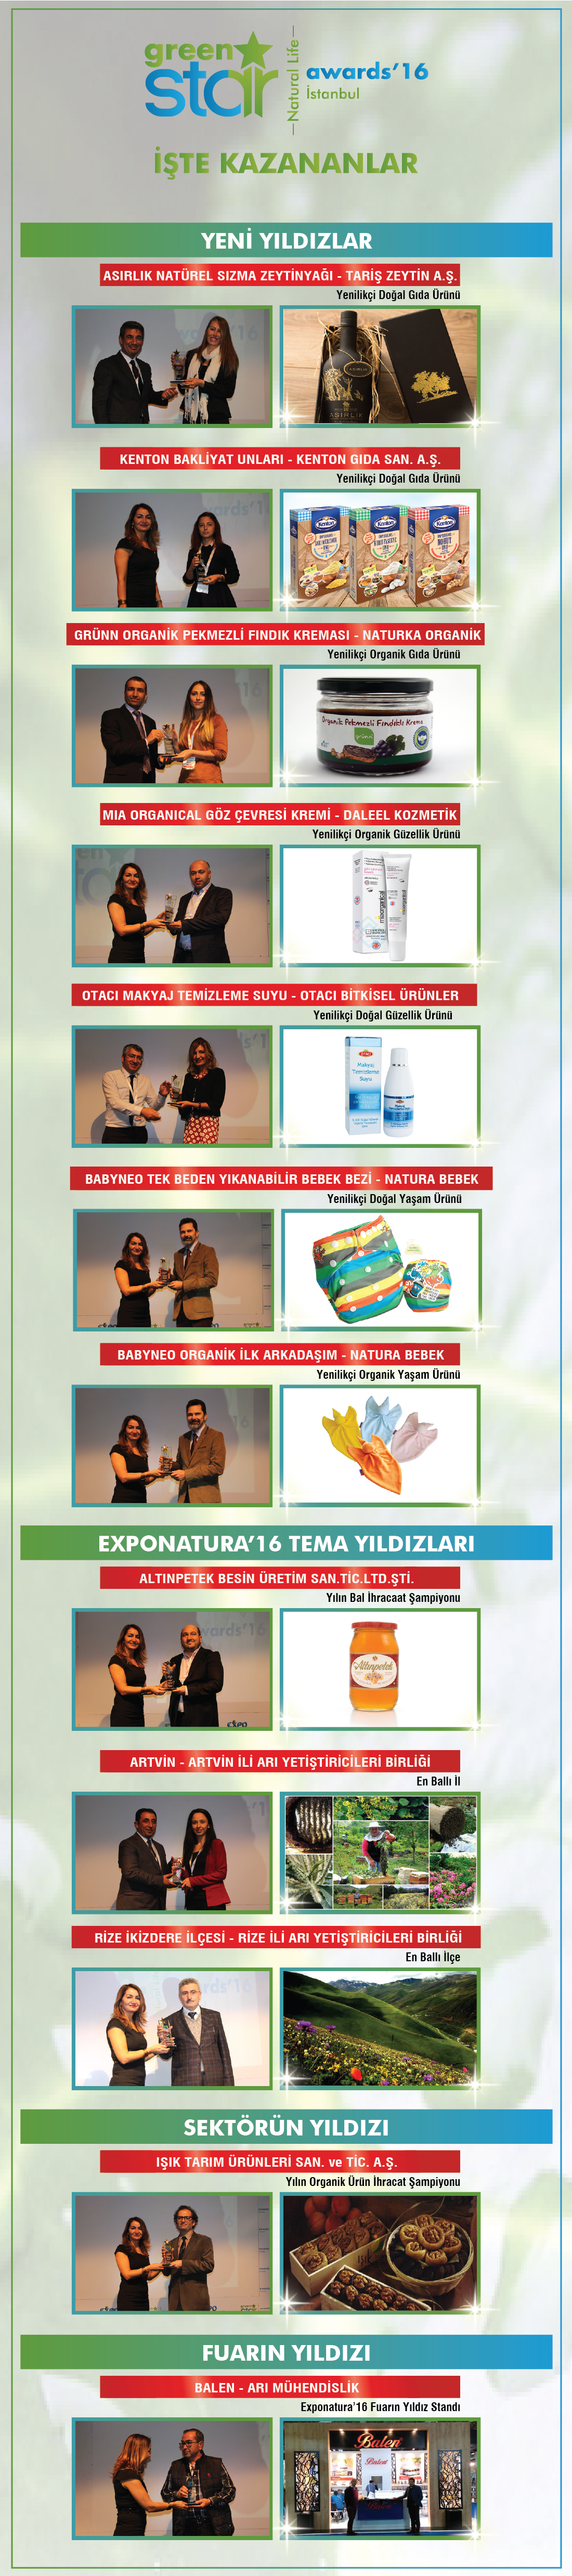 green-star-awards-2016-kazanlar